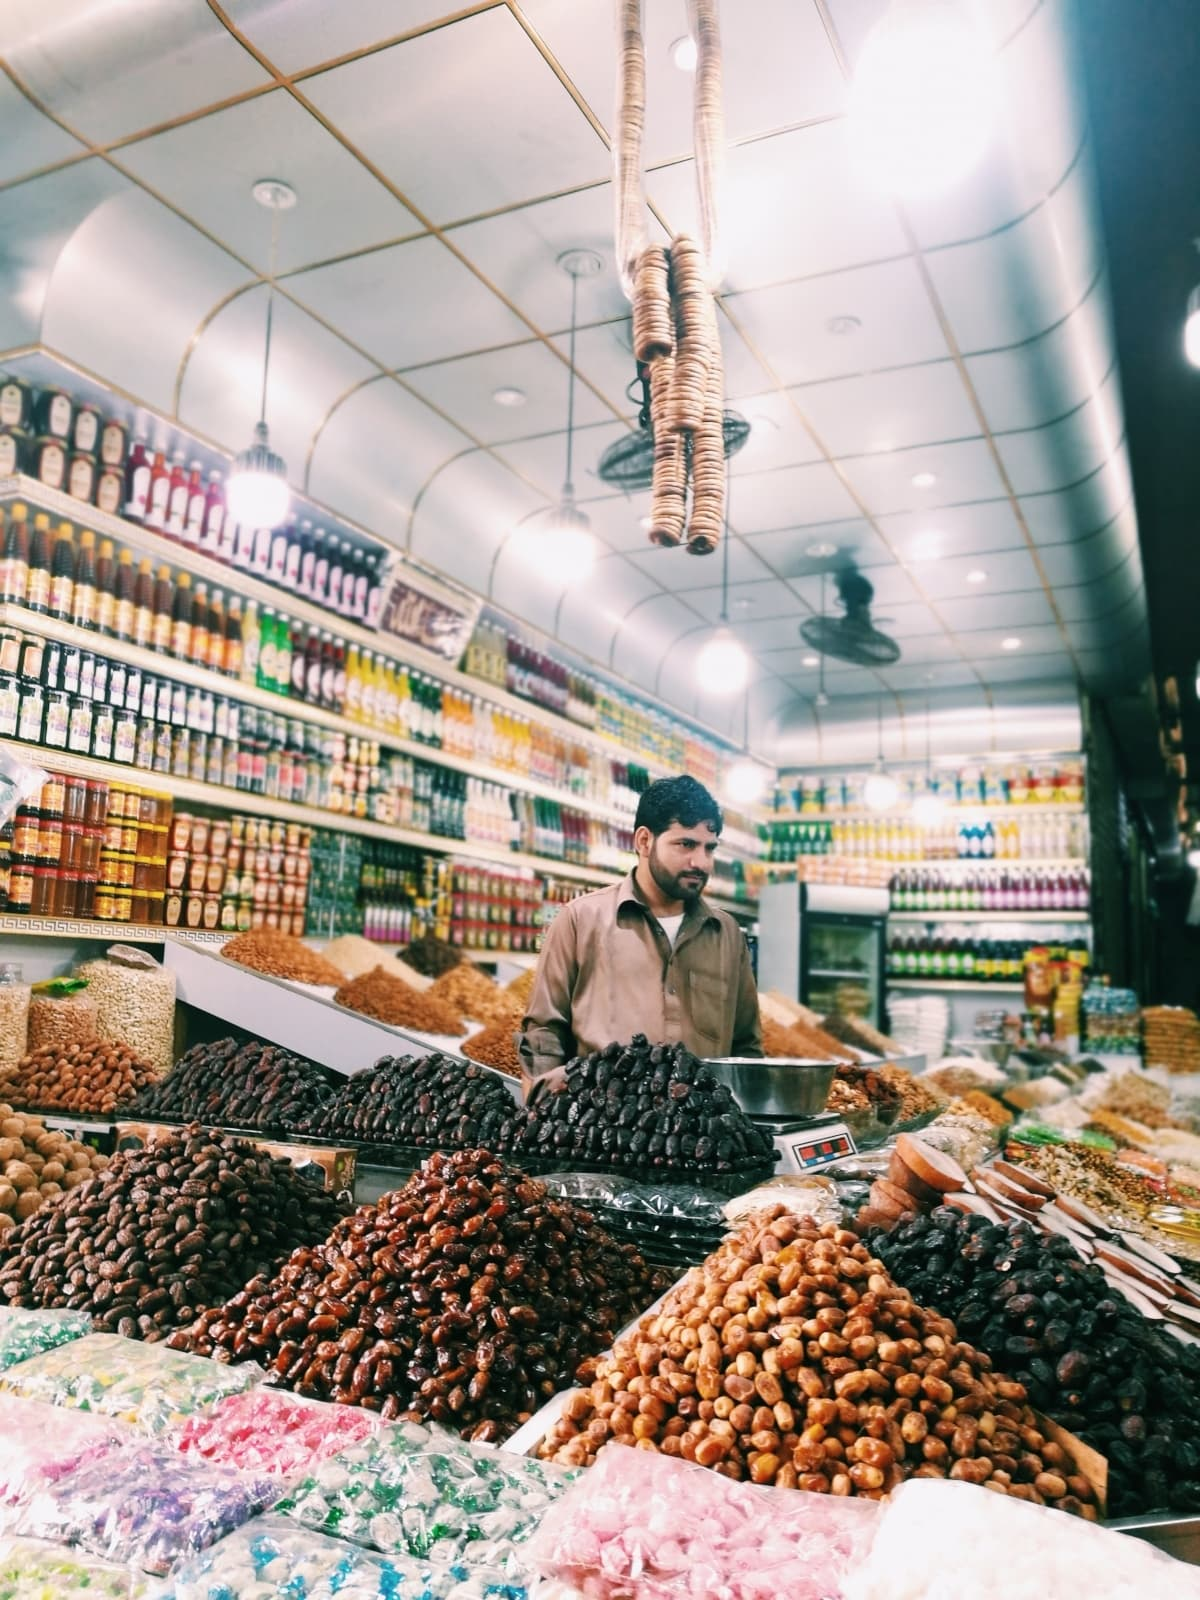 A shopkeeper and his dry fruits stall